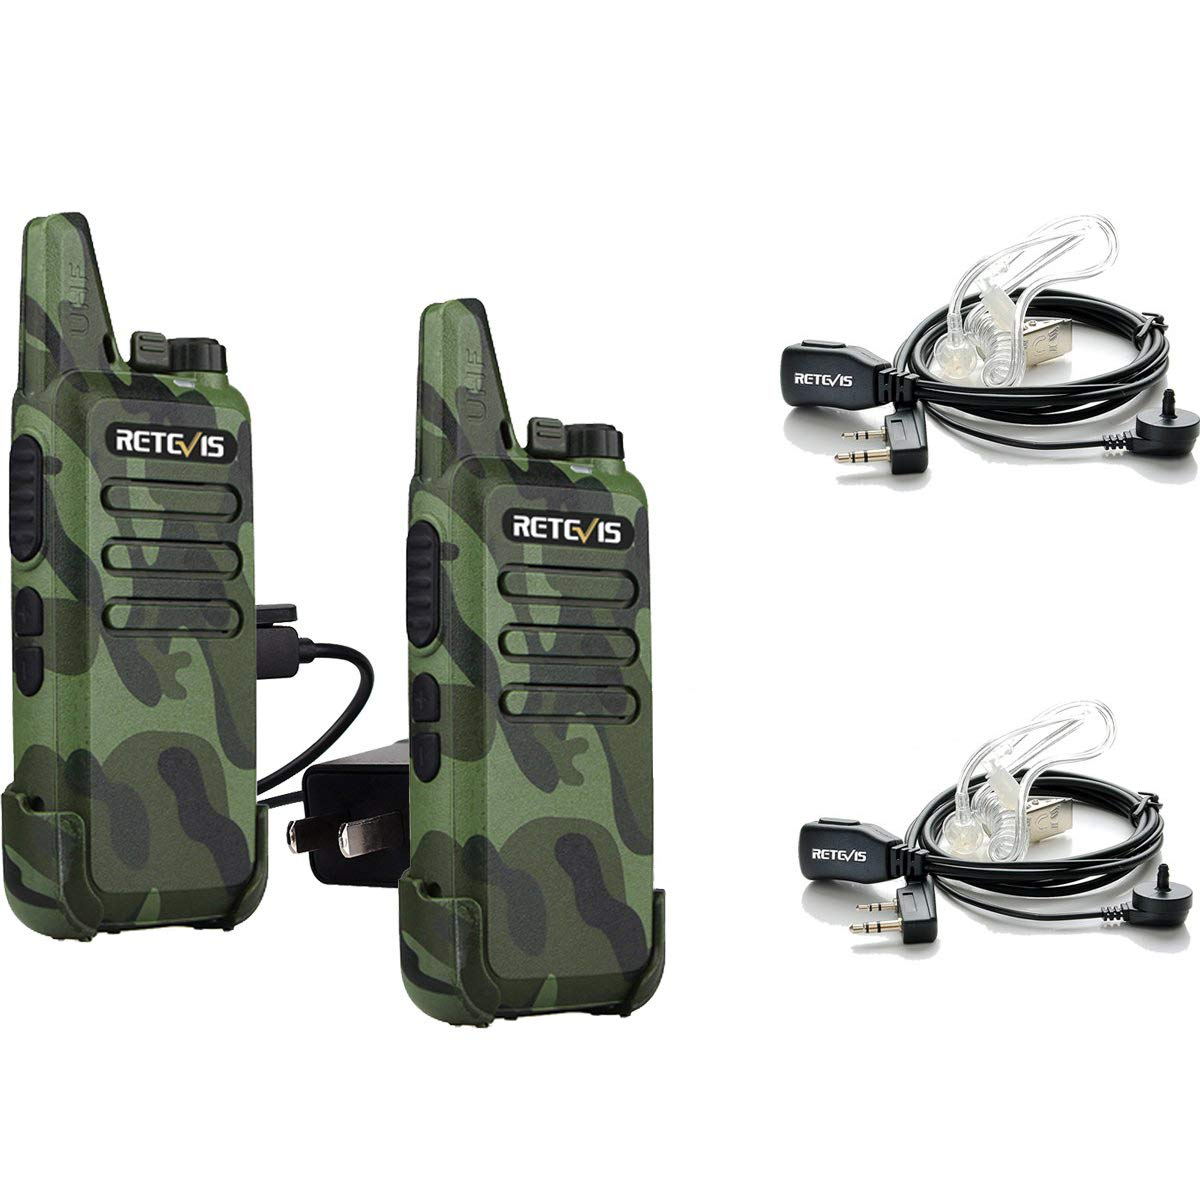 Retevis RT22 Walkie Talkies Camouflage UHF16CH Vox Scan Outdoor 2 Way Radios a (2 Pack) and Covert Air Acoustic Earpiece (2 Pack)